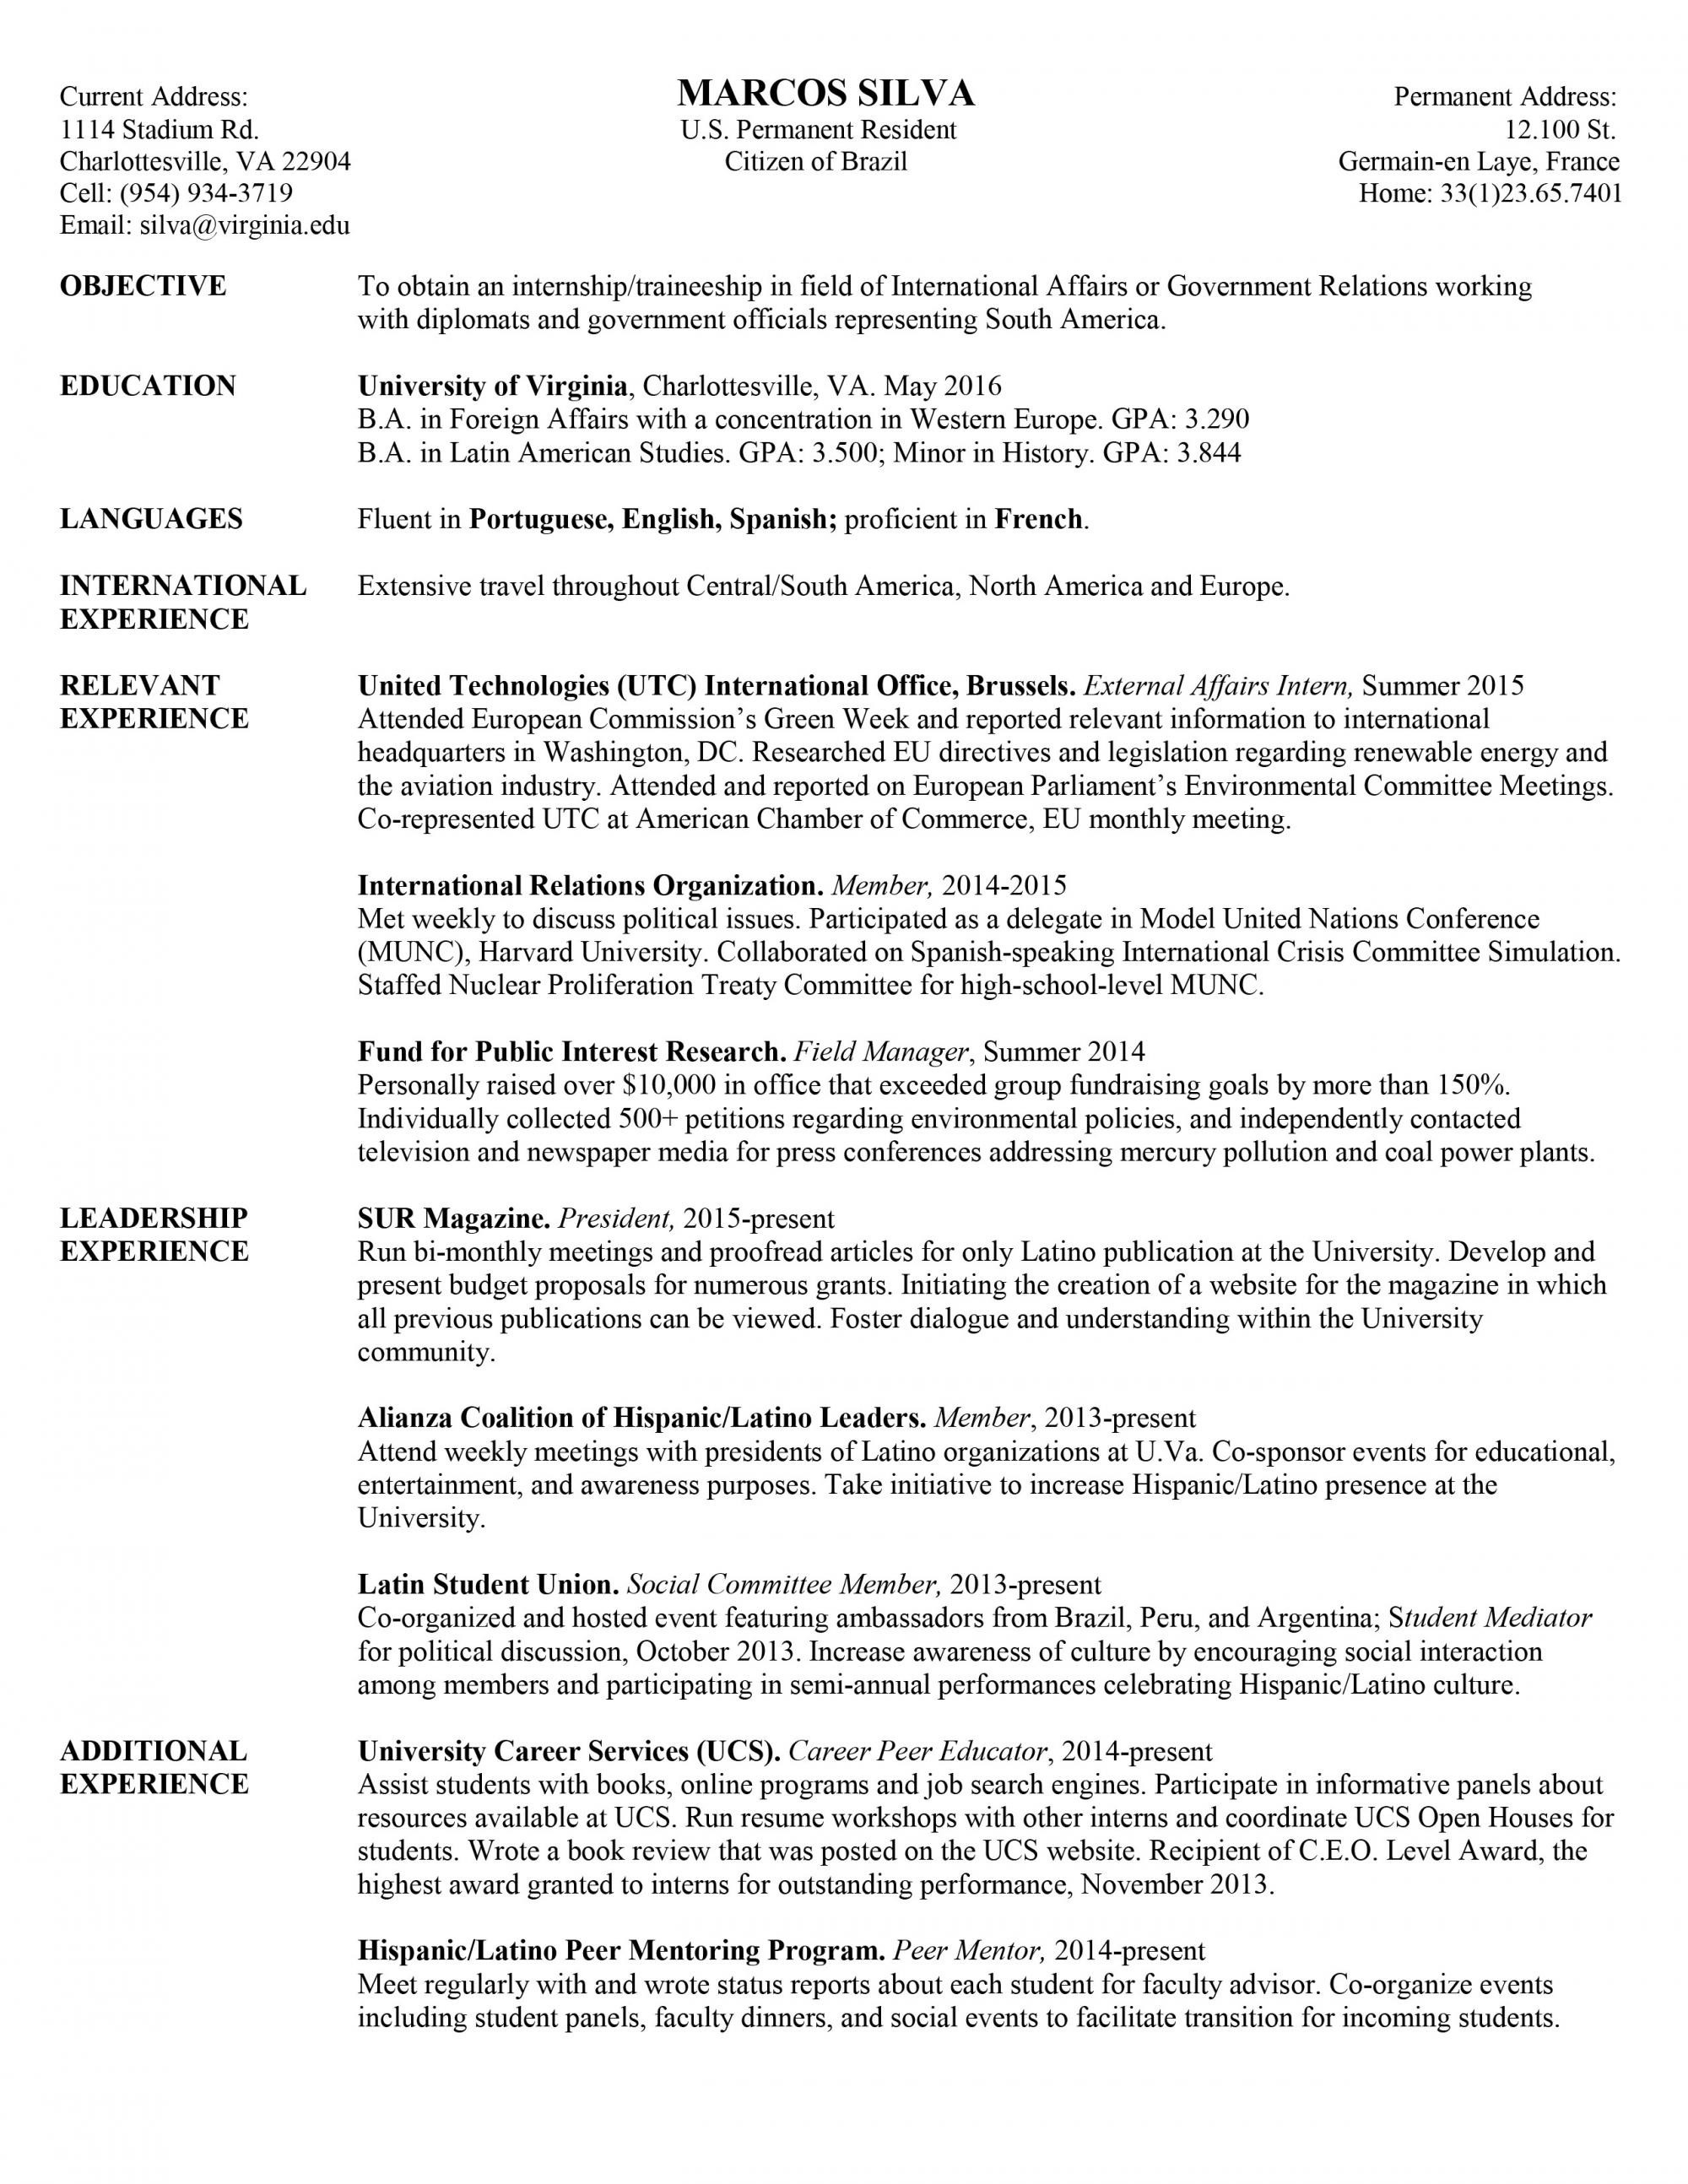 Coordinator Skills Resume - Customer Service Job Description for Resume Luxury event Coordinator